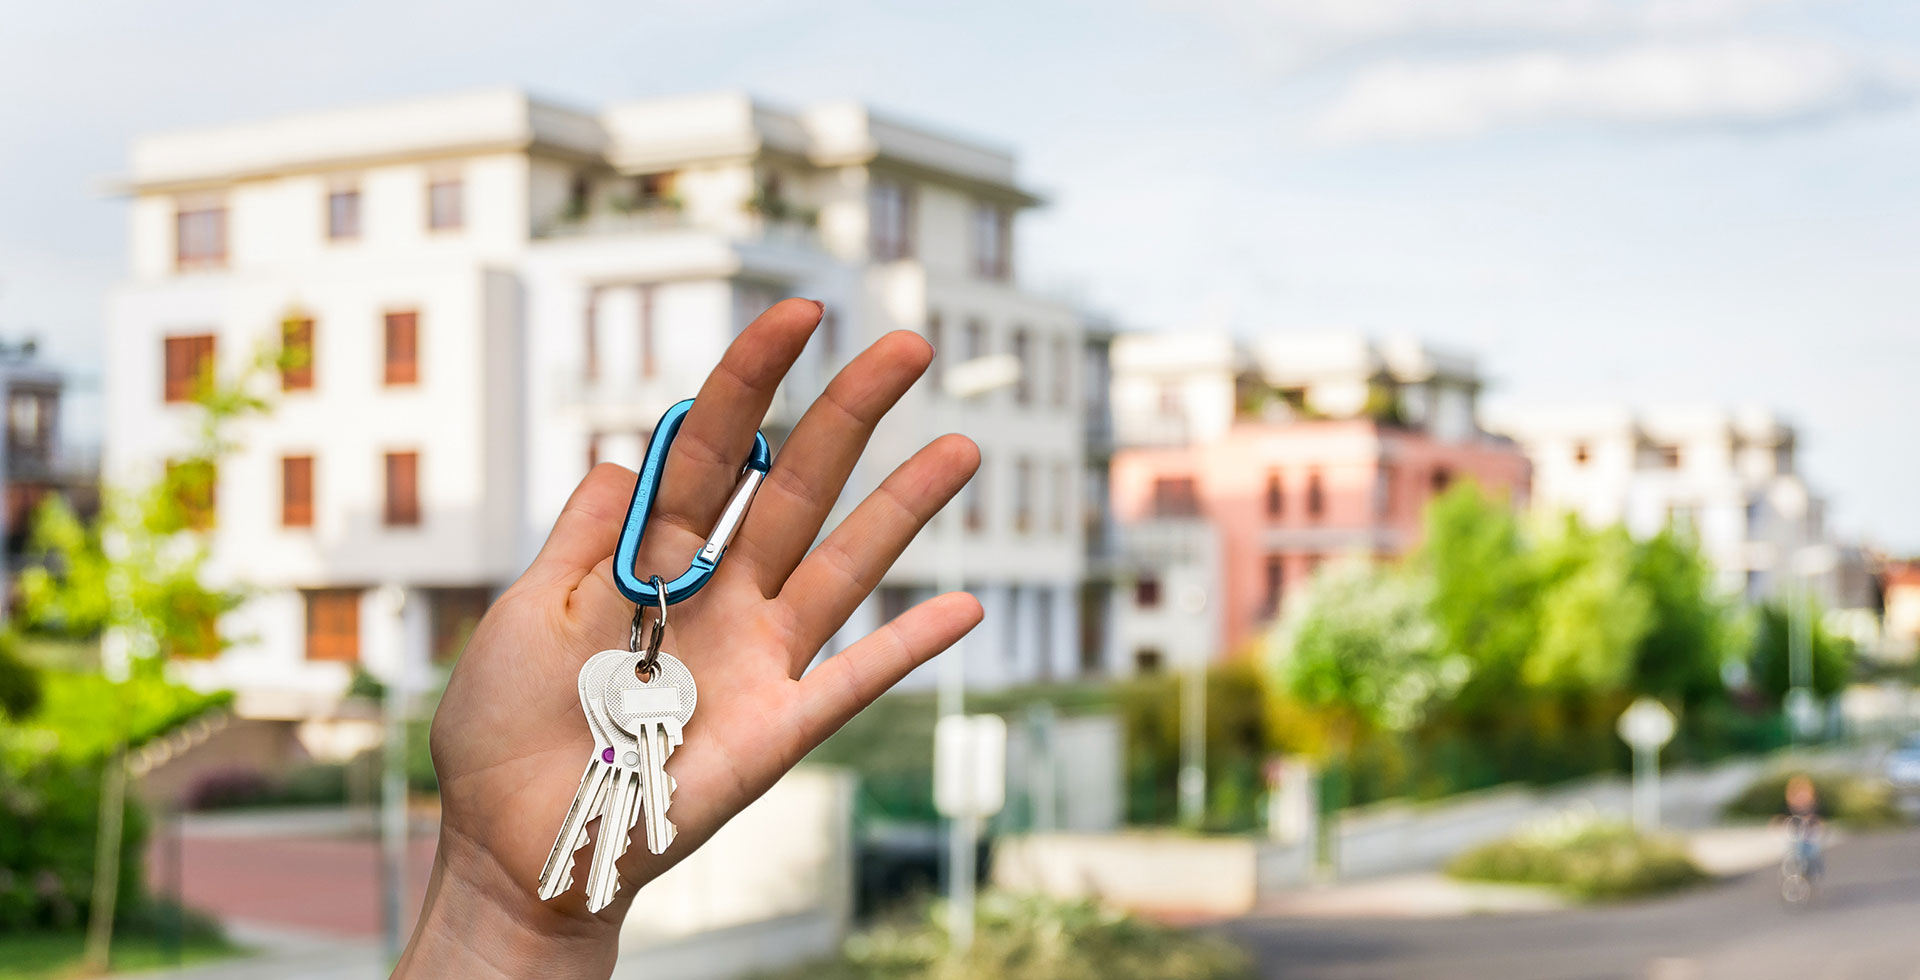 A hand holding house keys with blurry apartment buildings in the background